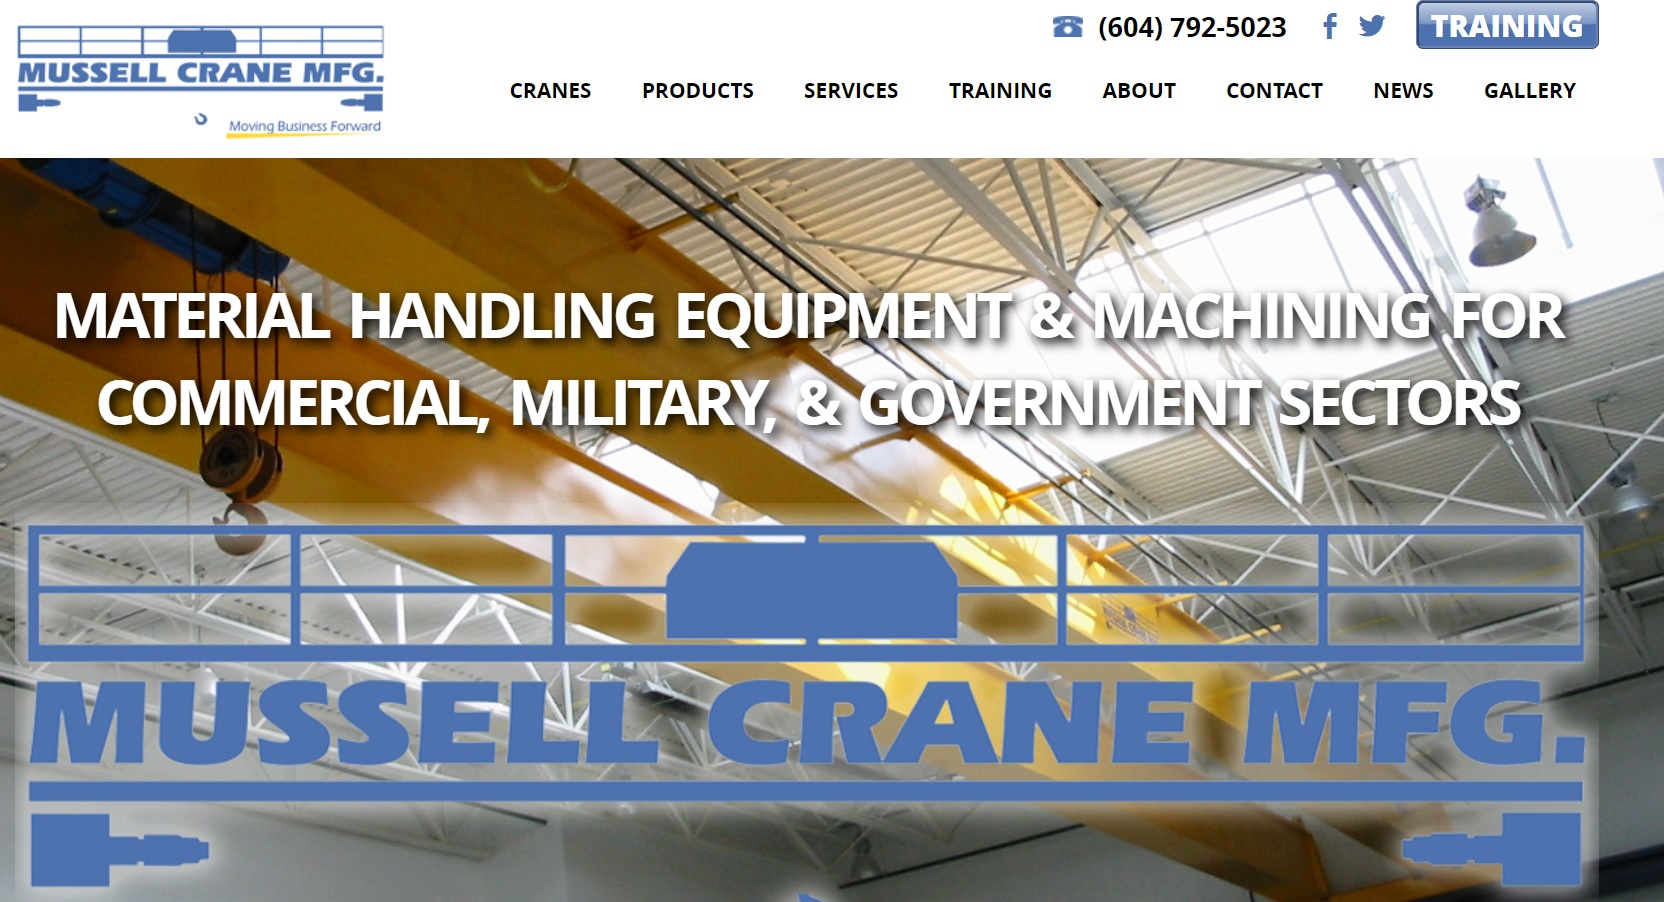 Mussell Crane Manufacturing